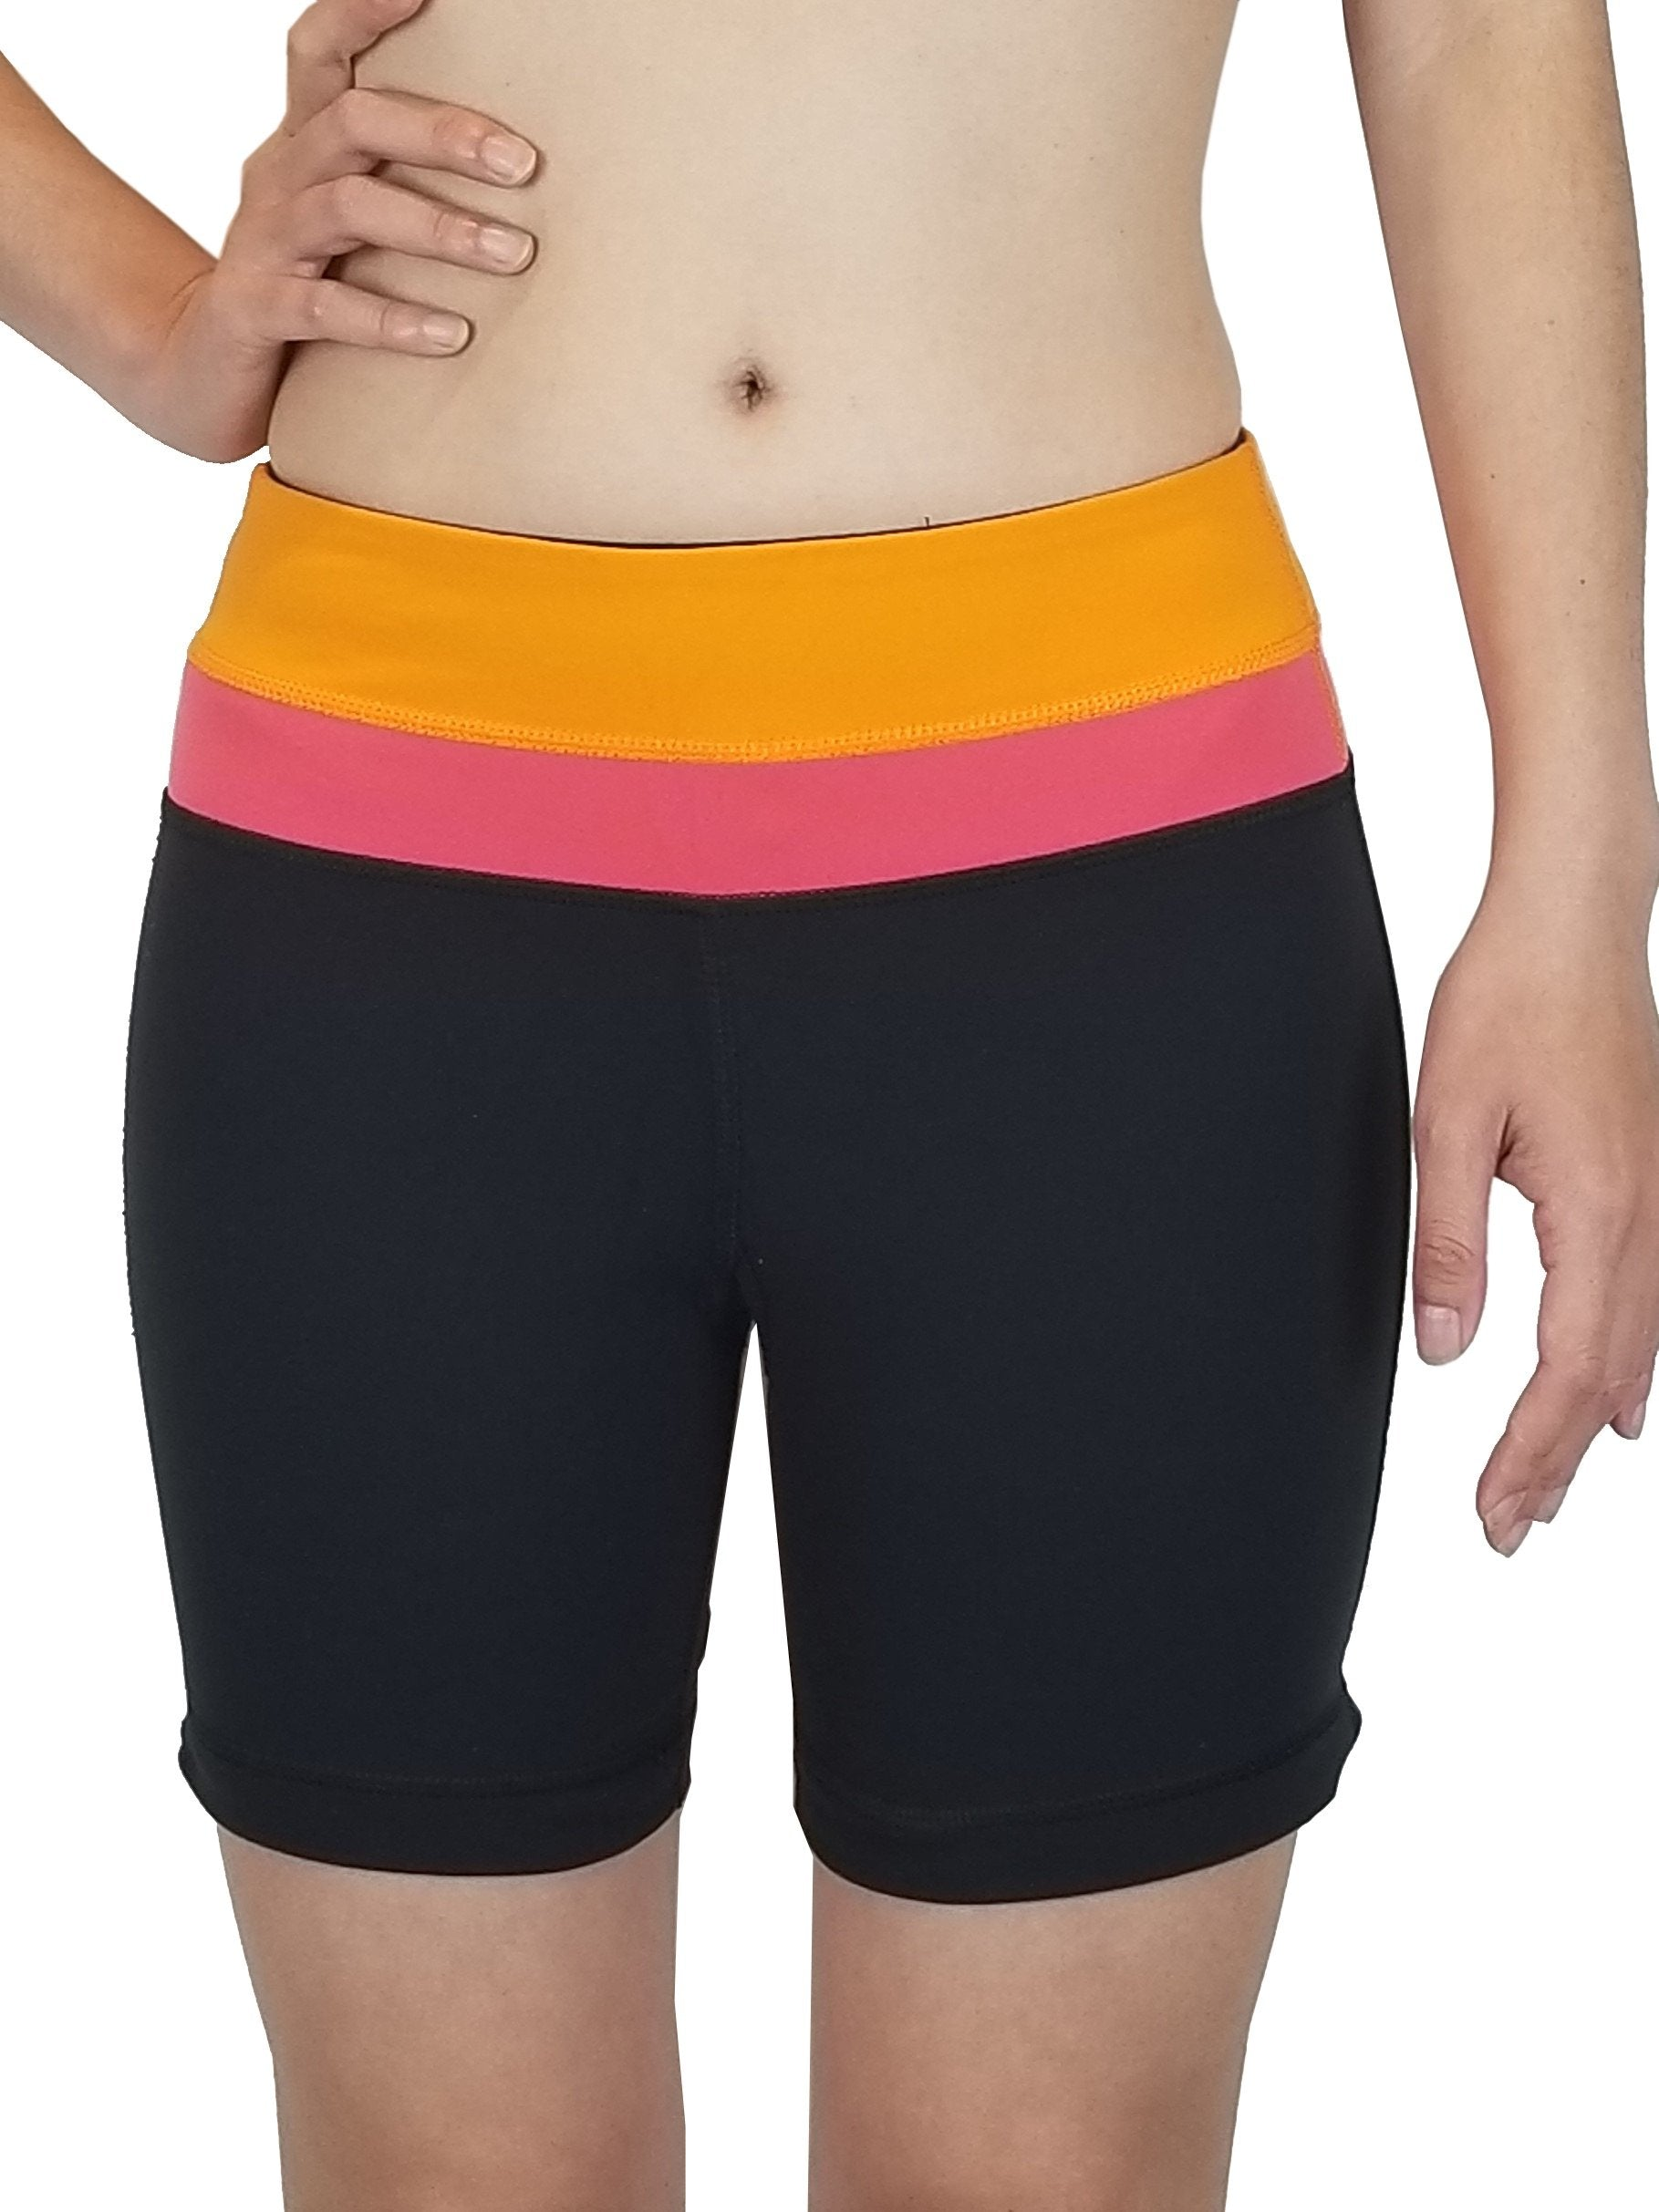 Lululemon Align Shorts 4'' Yoga, High waist align shorts perfect for your active life style. Lululemon size 2. https://info.lululemon.com/help/size-chart, Black, Orange, Pink, Ntlon, Lycra, and Spandex, women's Activewear, women's Black, Orange, Pink Activewear, Lululemon women's Activewear, Yoga, yoga pants, athletic wear, work out, comfortable pants, fitness, fit